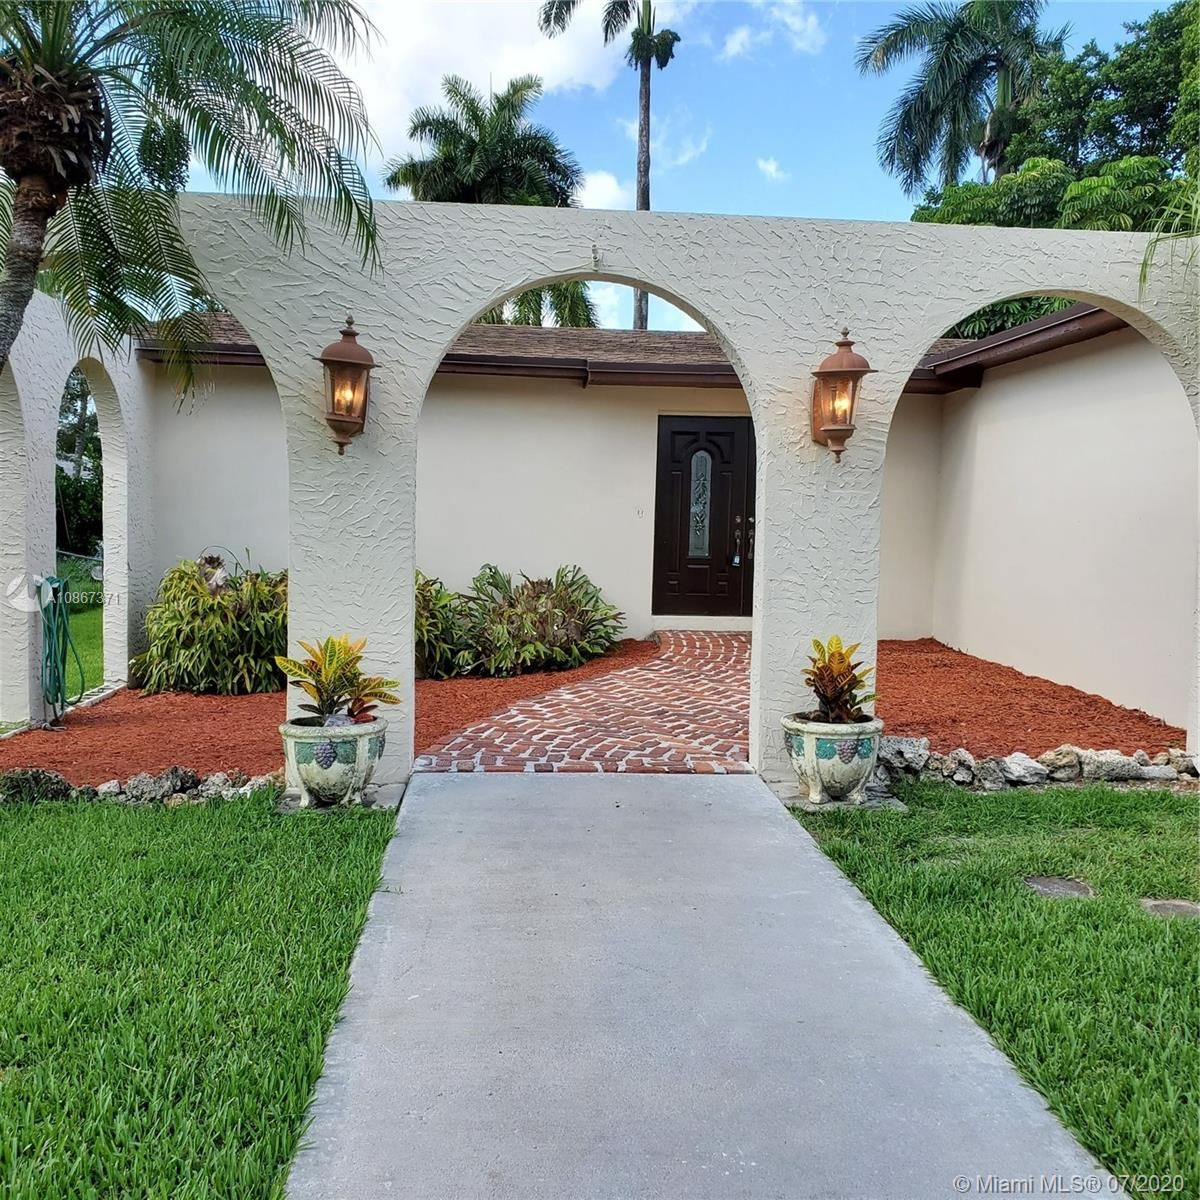 380 NE 117th St, Miami, FL 33161 - #: A10867371